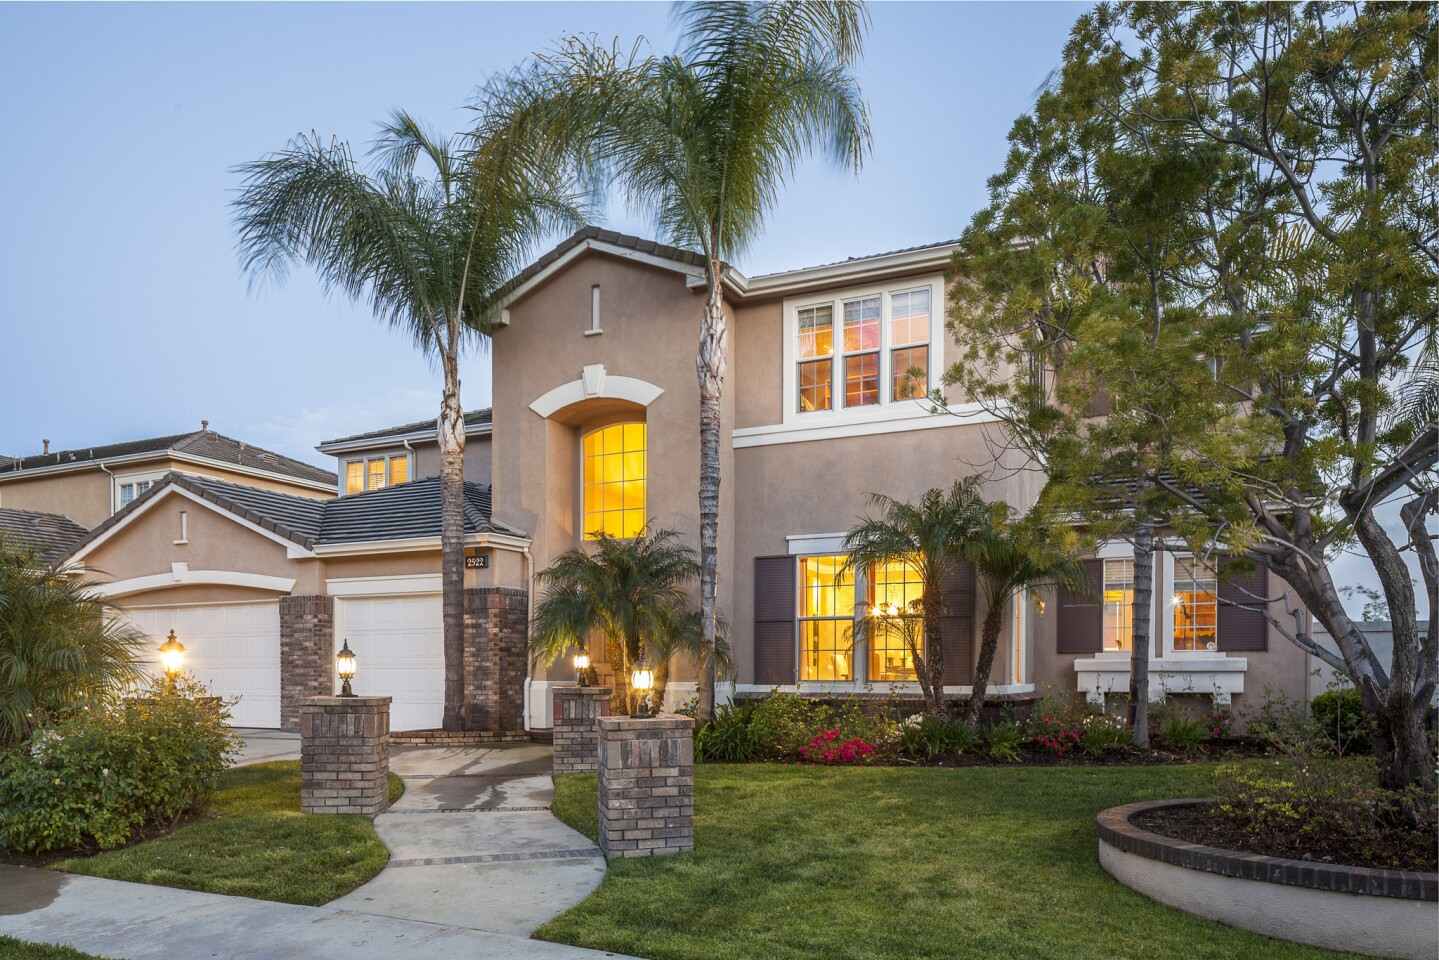 Home of the Day: Slam dunk for spacious, contemporary style